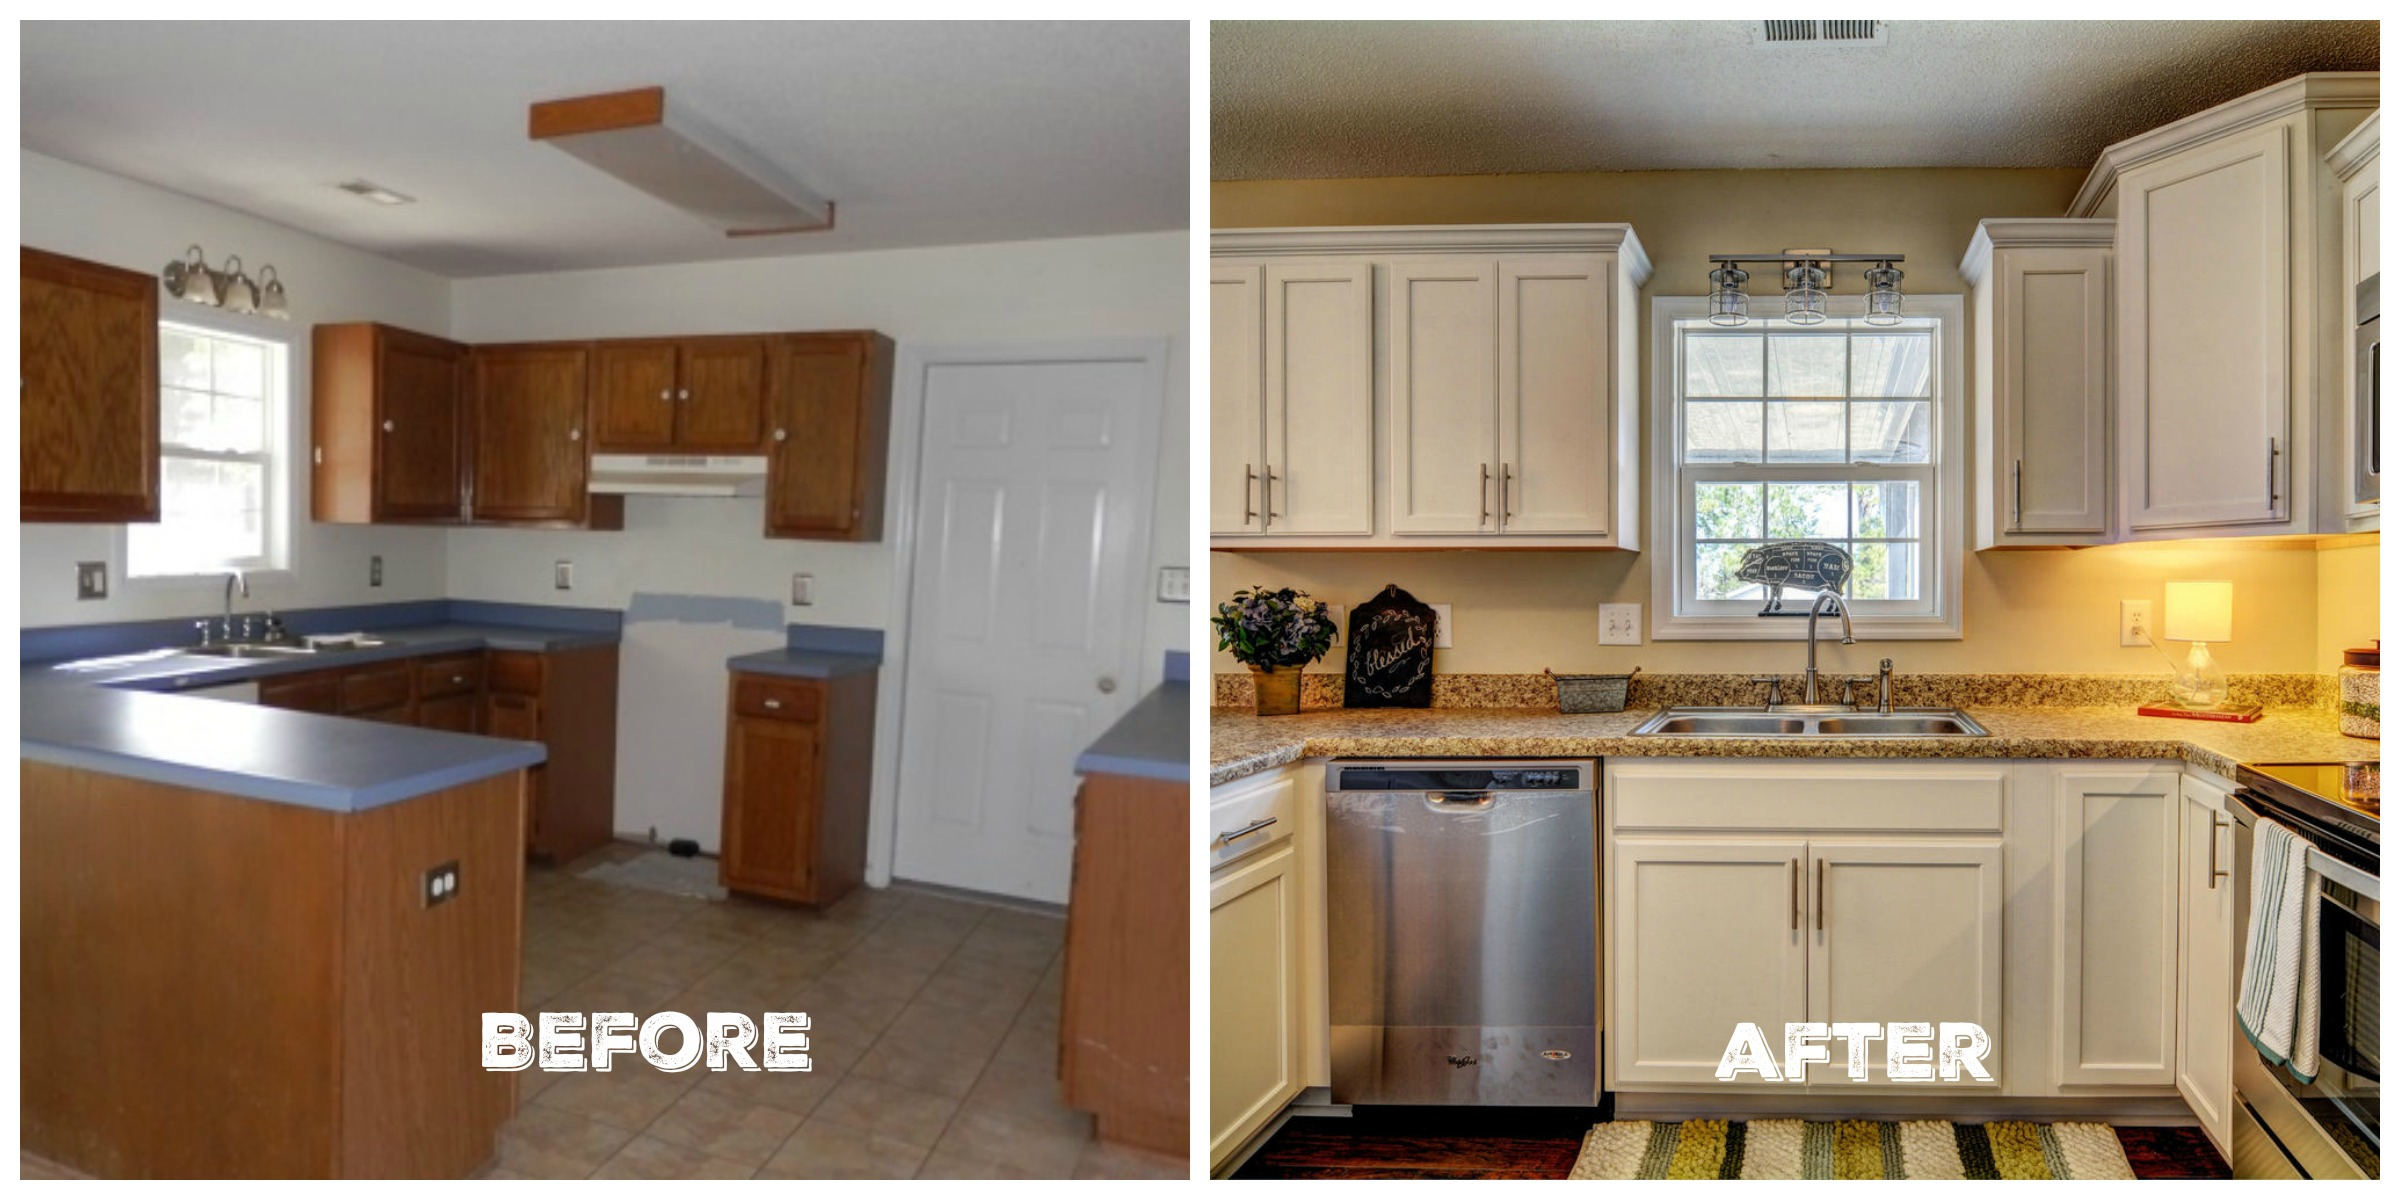 Fixer upper home kitchen - Before After Kitchen Flip House Reveal The Everyday Home